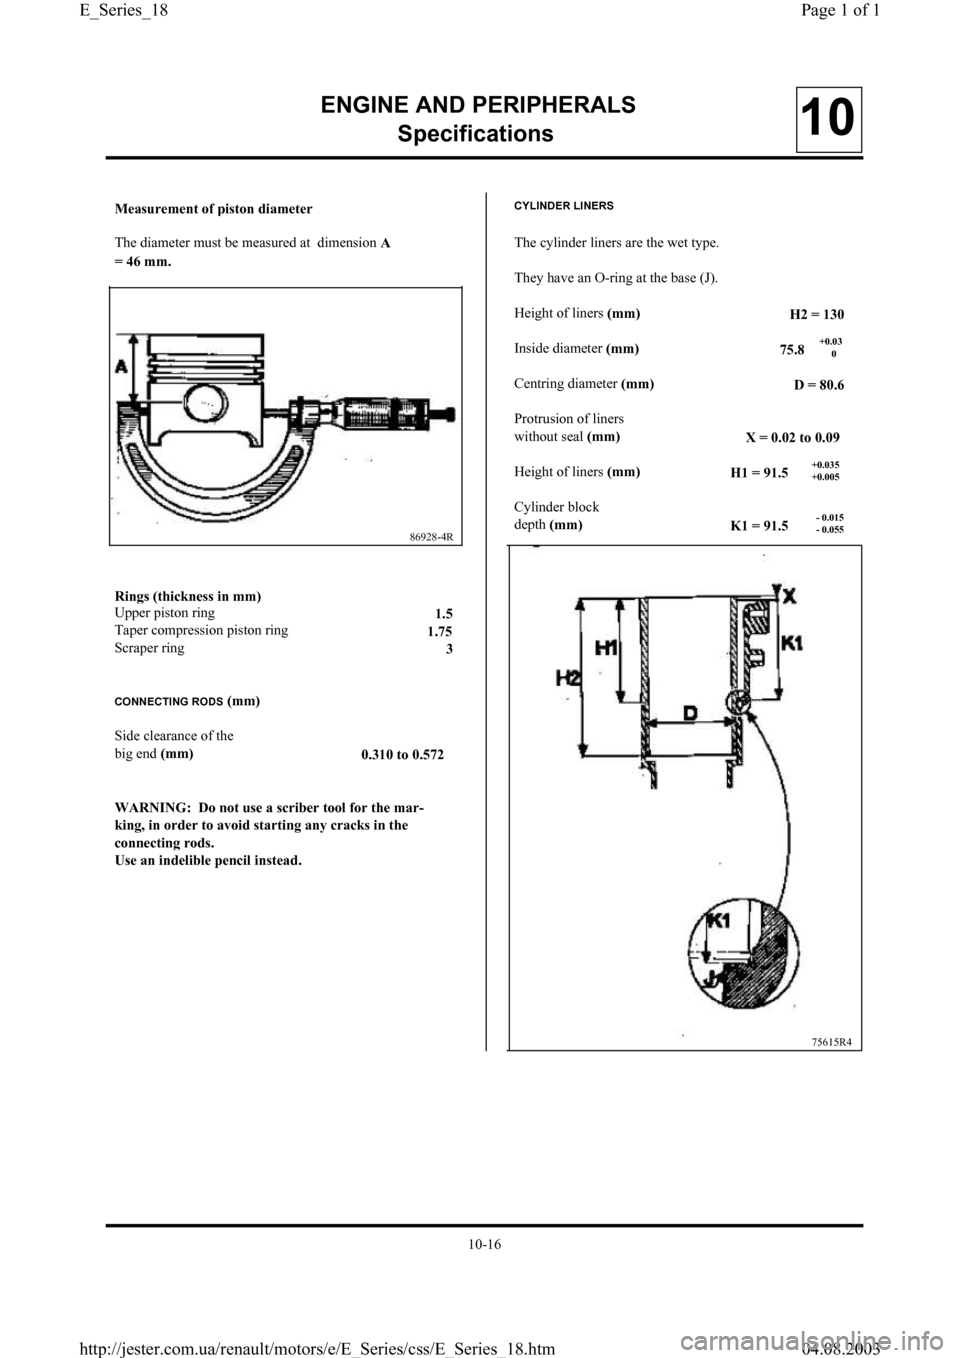 RENAULT CLIO 1997 X57 / 1.G Petrol Engines Workshop Manual, Page 18